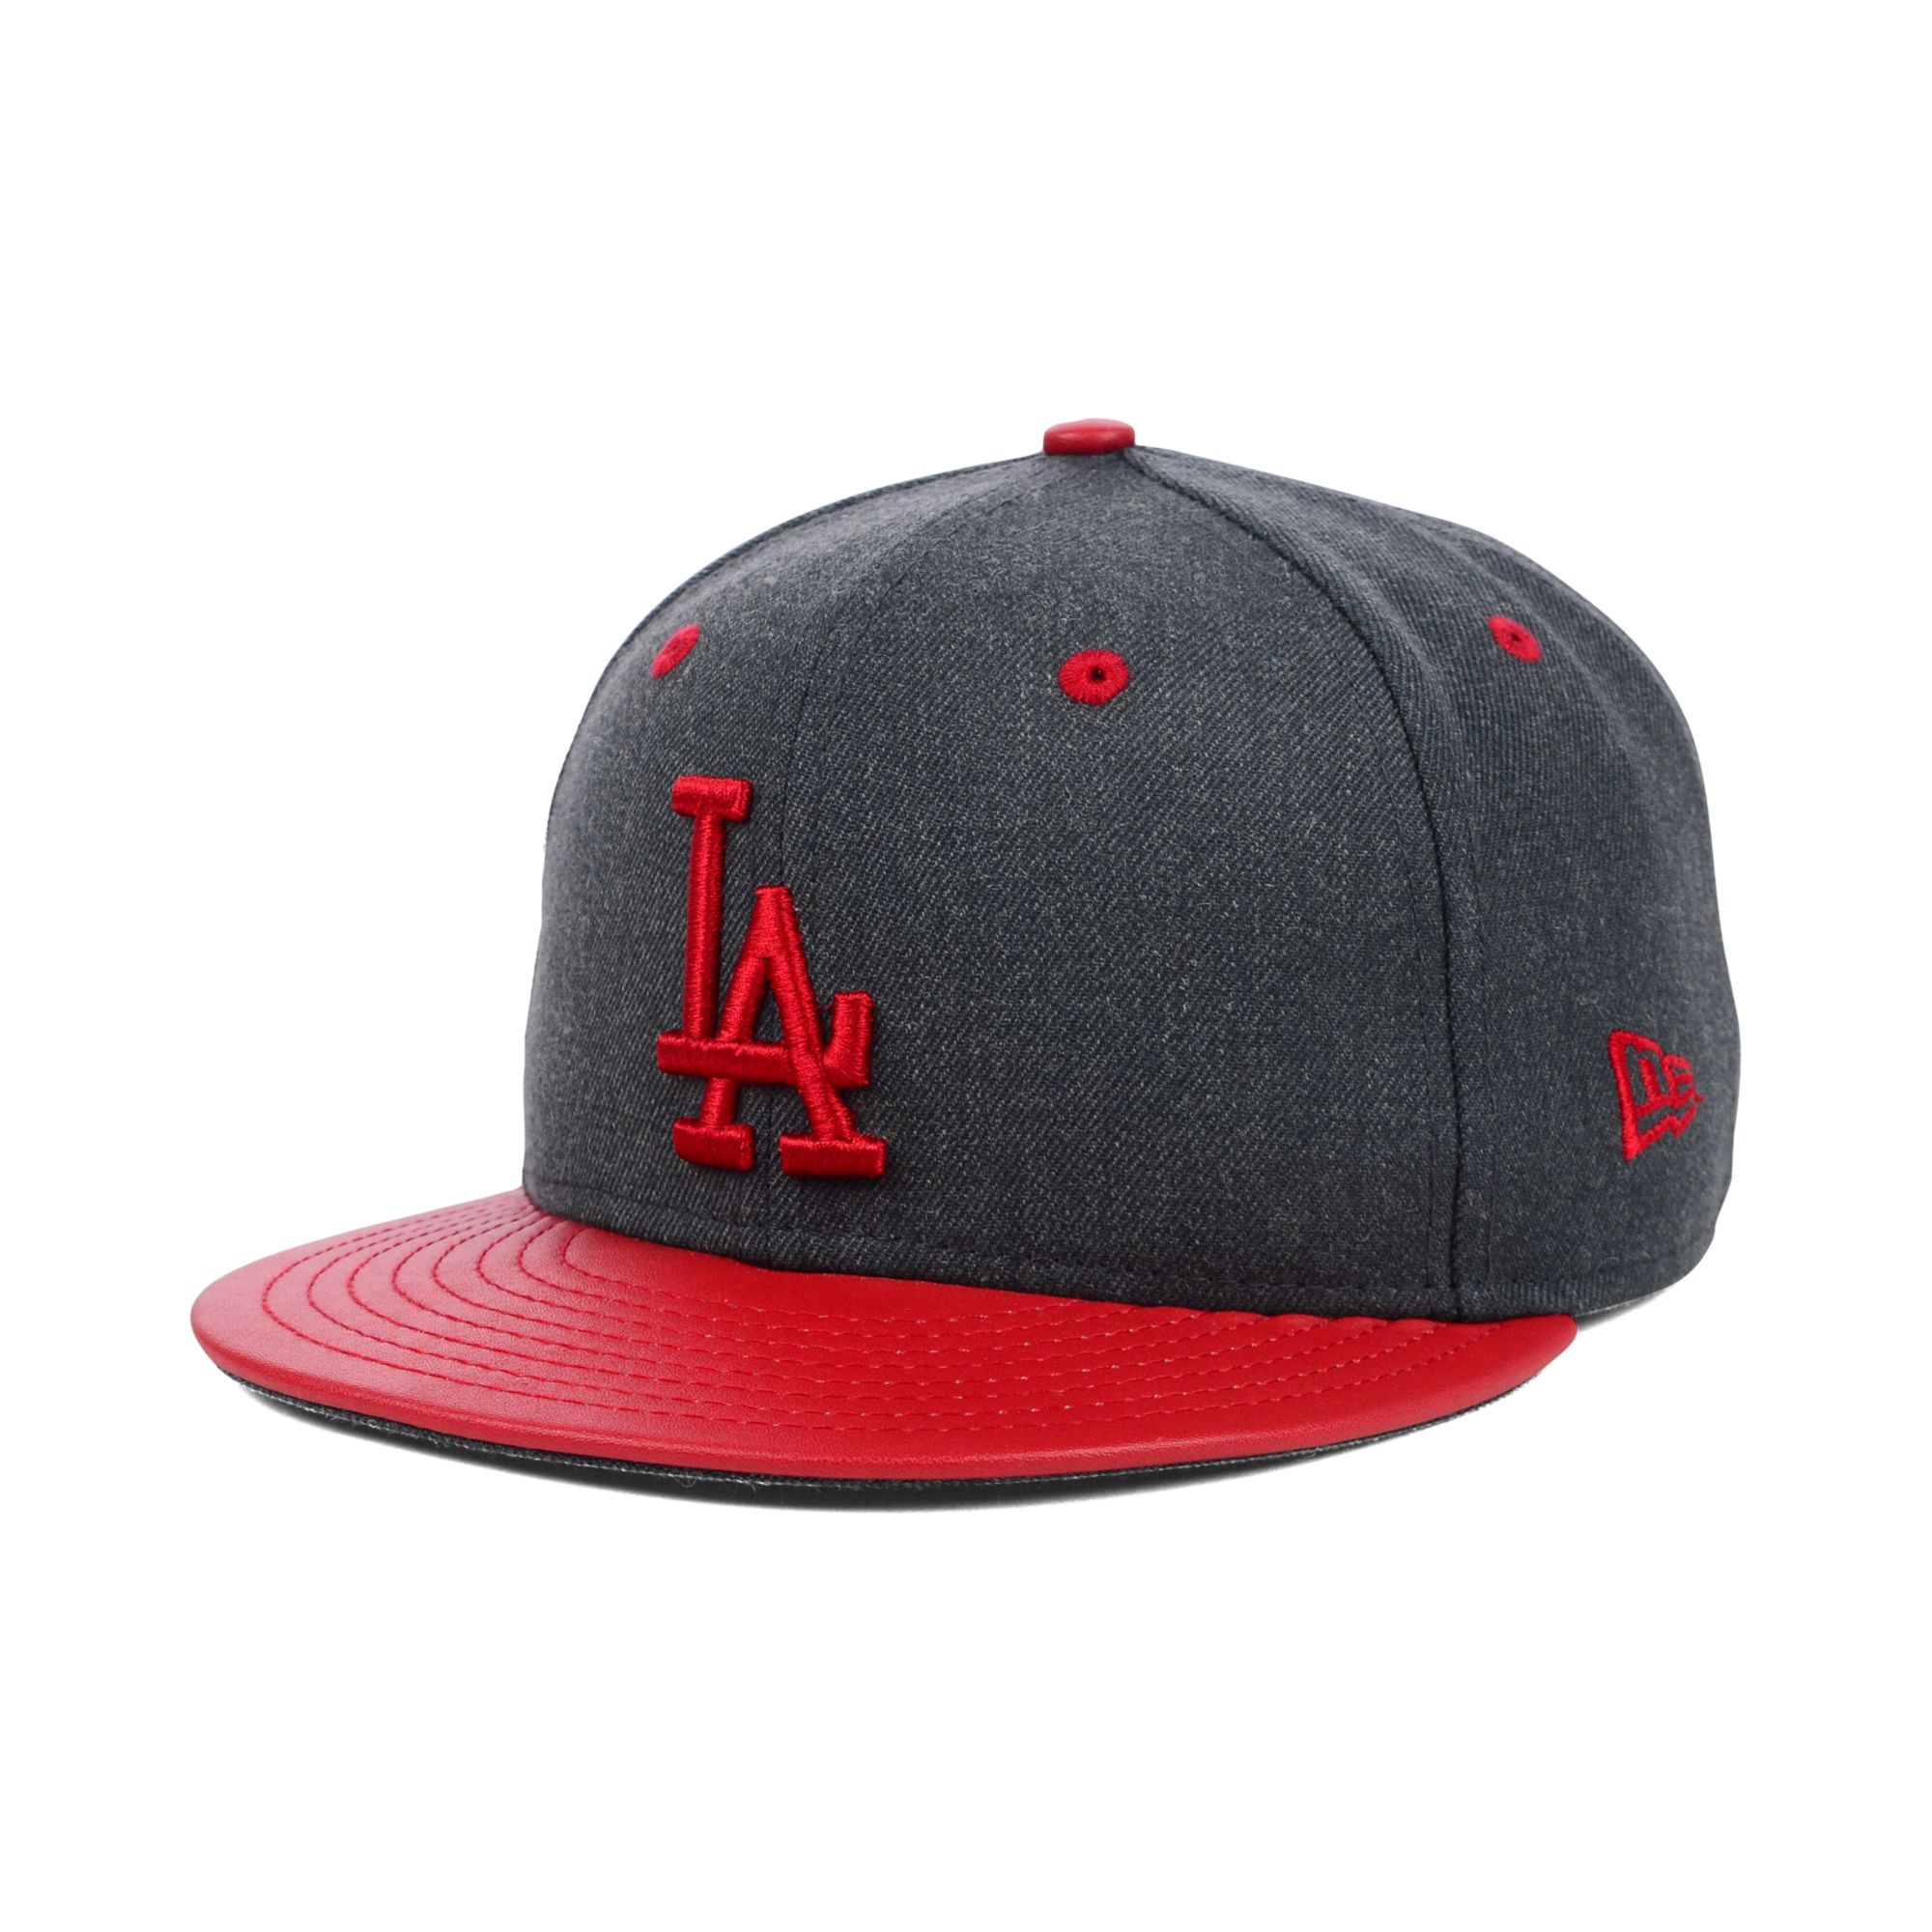 on sale 0b501 b74c0 ... mlb cap e0fca 8231f get mens texas rangers 47 gray clean up road  adjustable hat lyst ktz los angeles dodgers ...